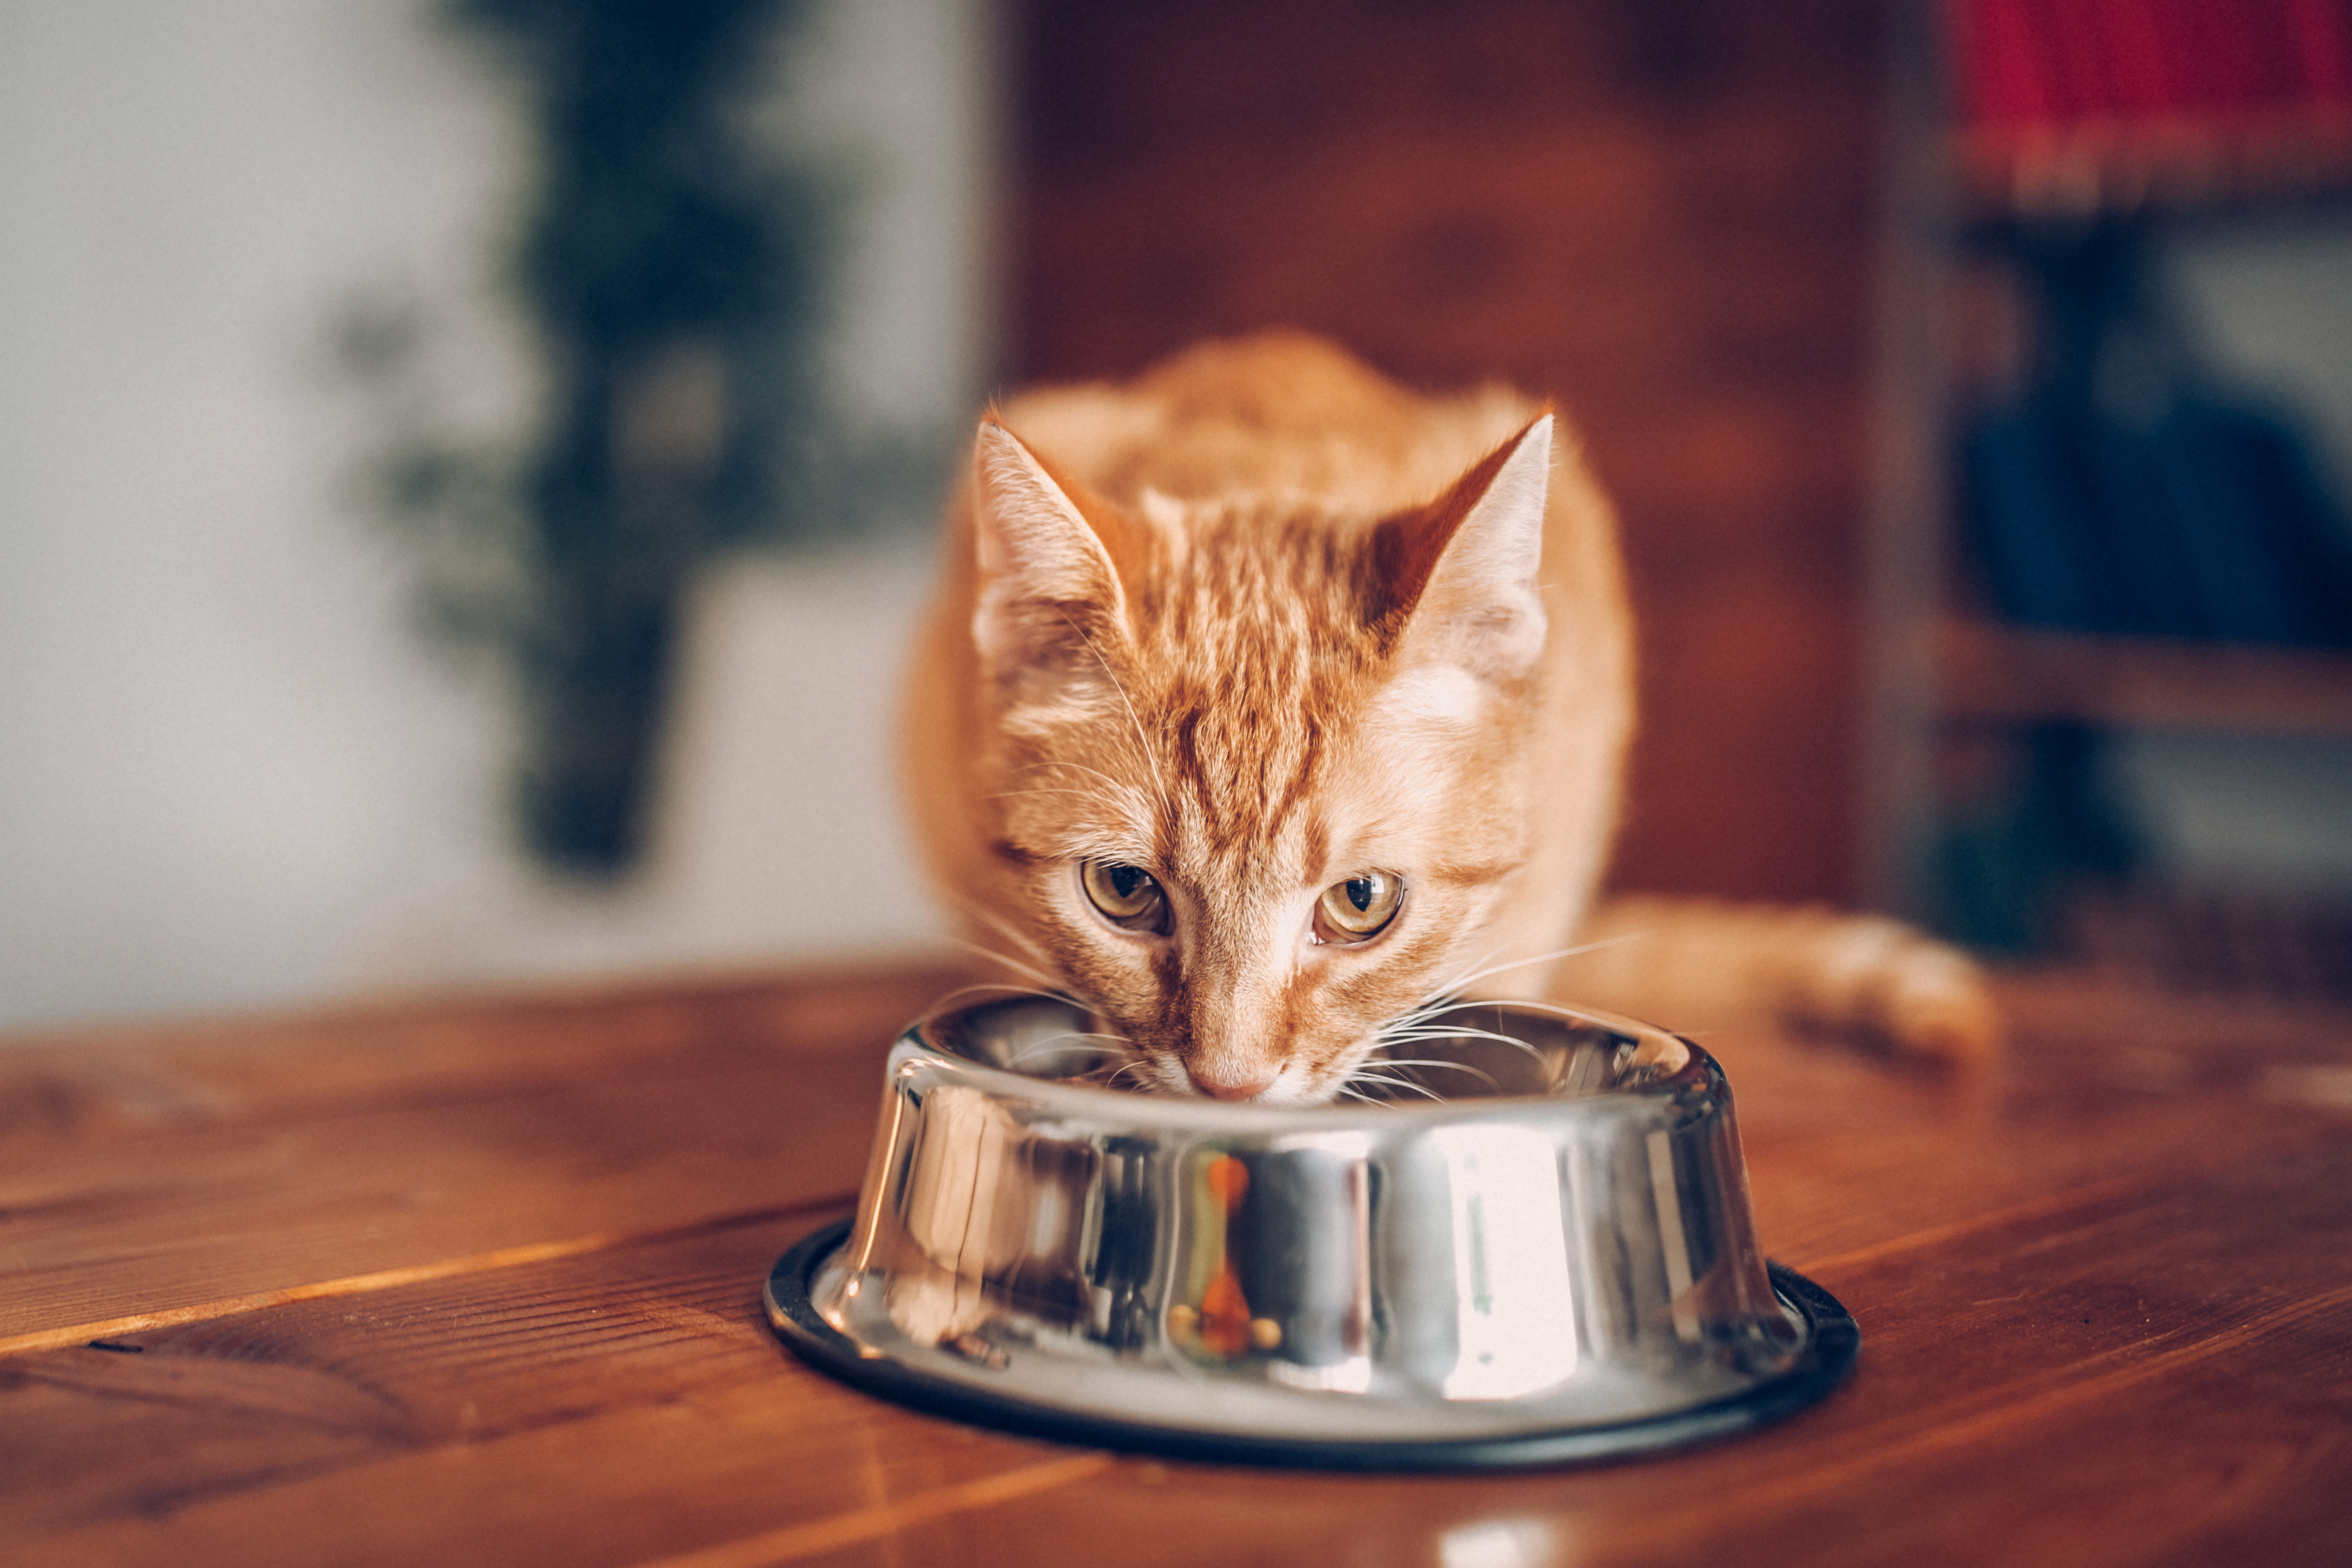 A cat eating at Kenmore Animal Hospital in Kenmore, New York